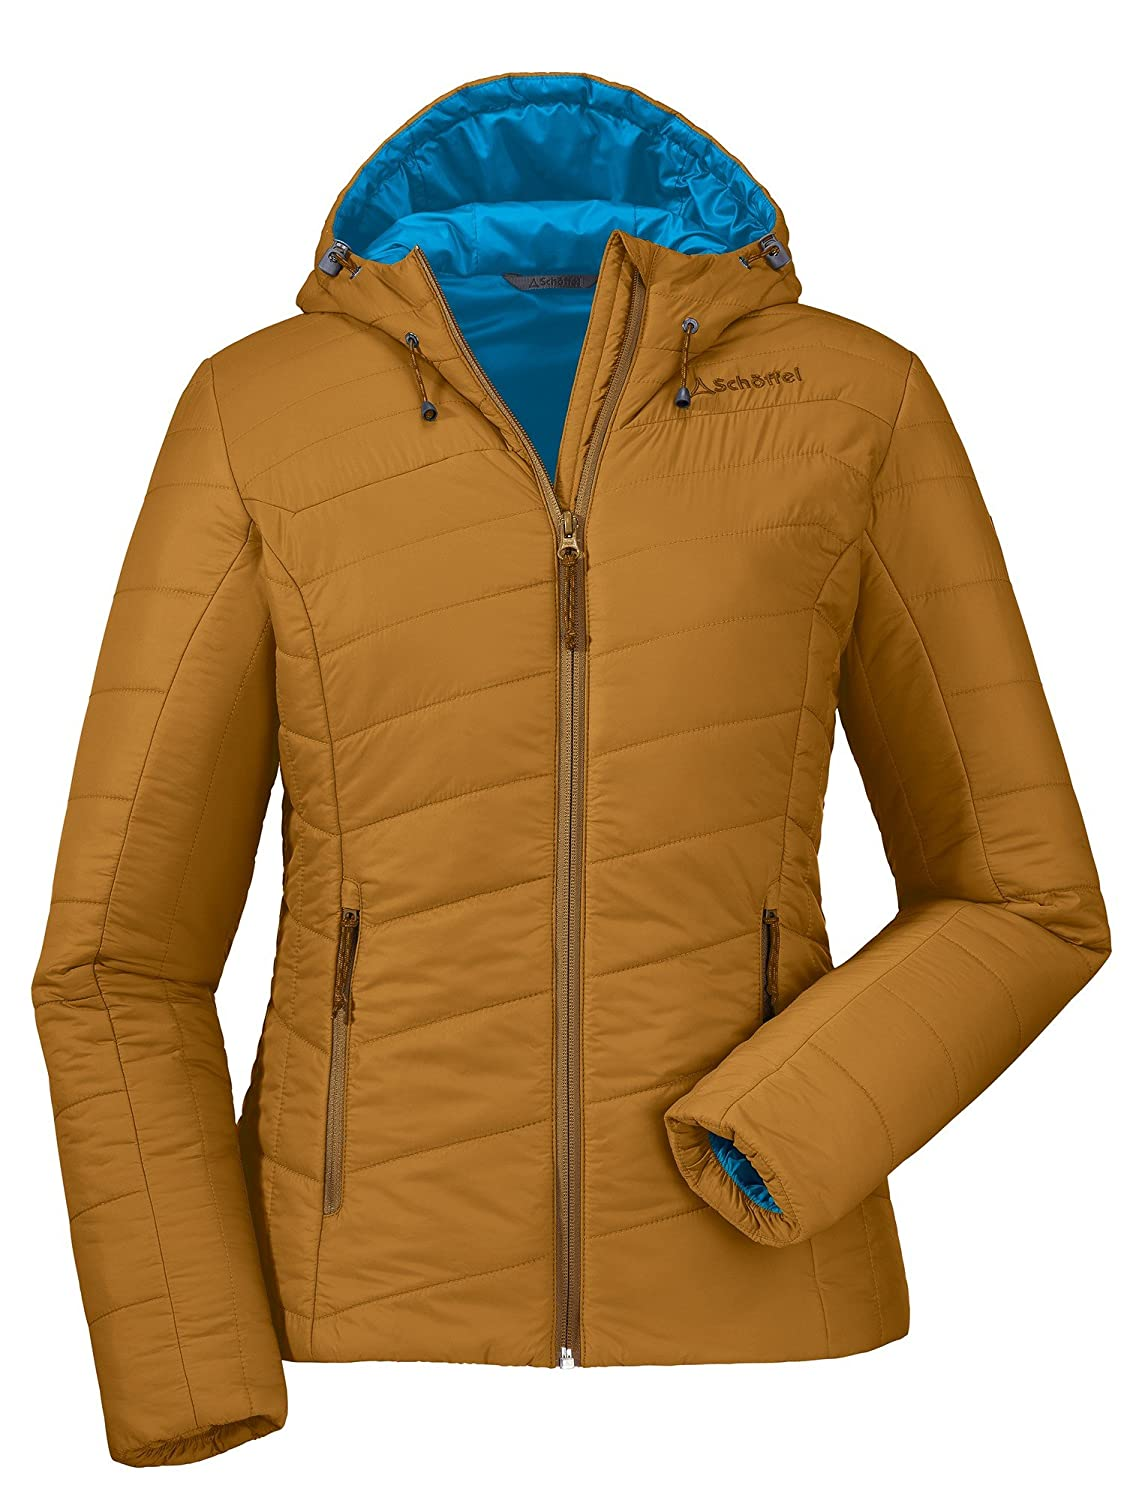 SCHÖFFEL Damen Daune Thermojac Moa, Golden Brown, 36, 20 11156 22396 4060 günstig